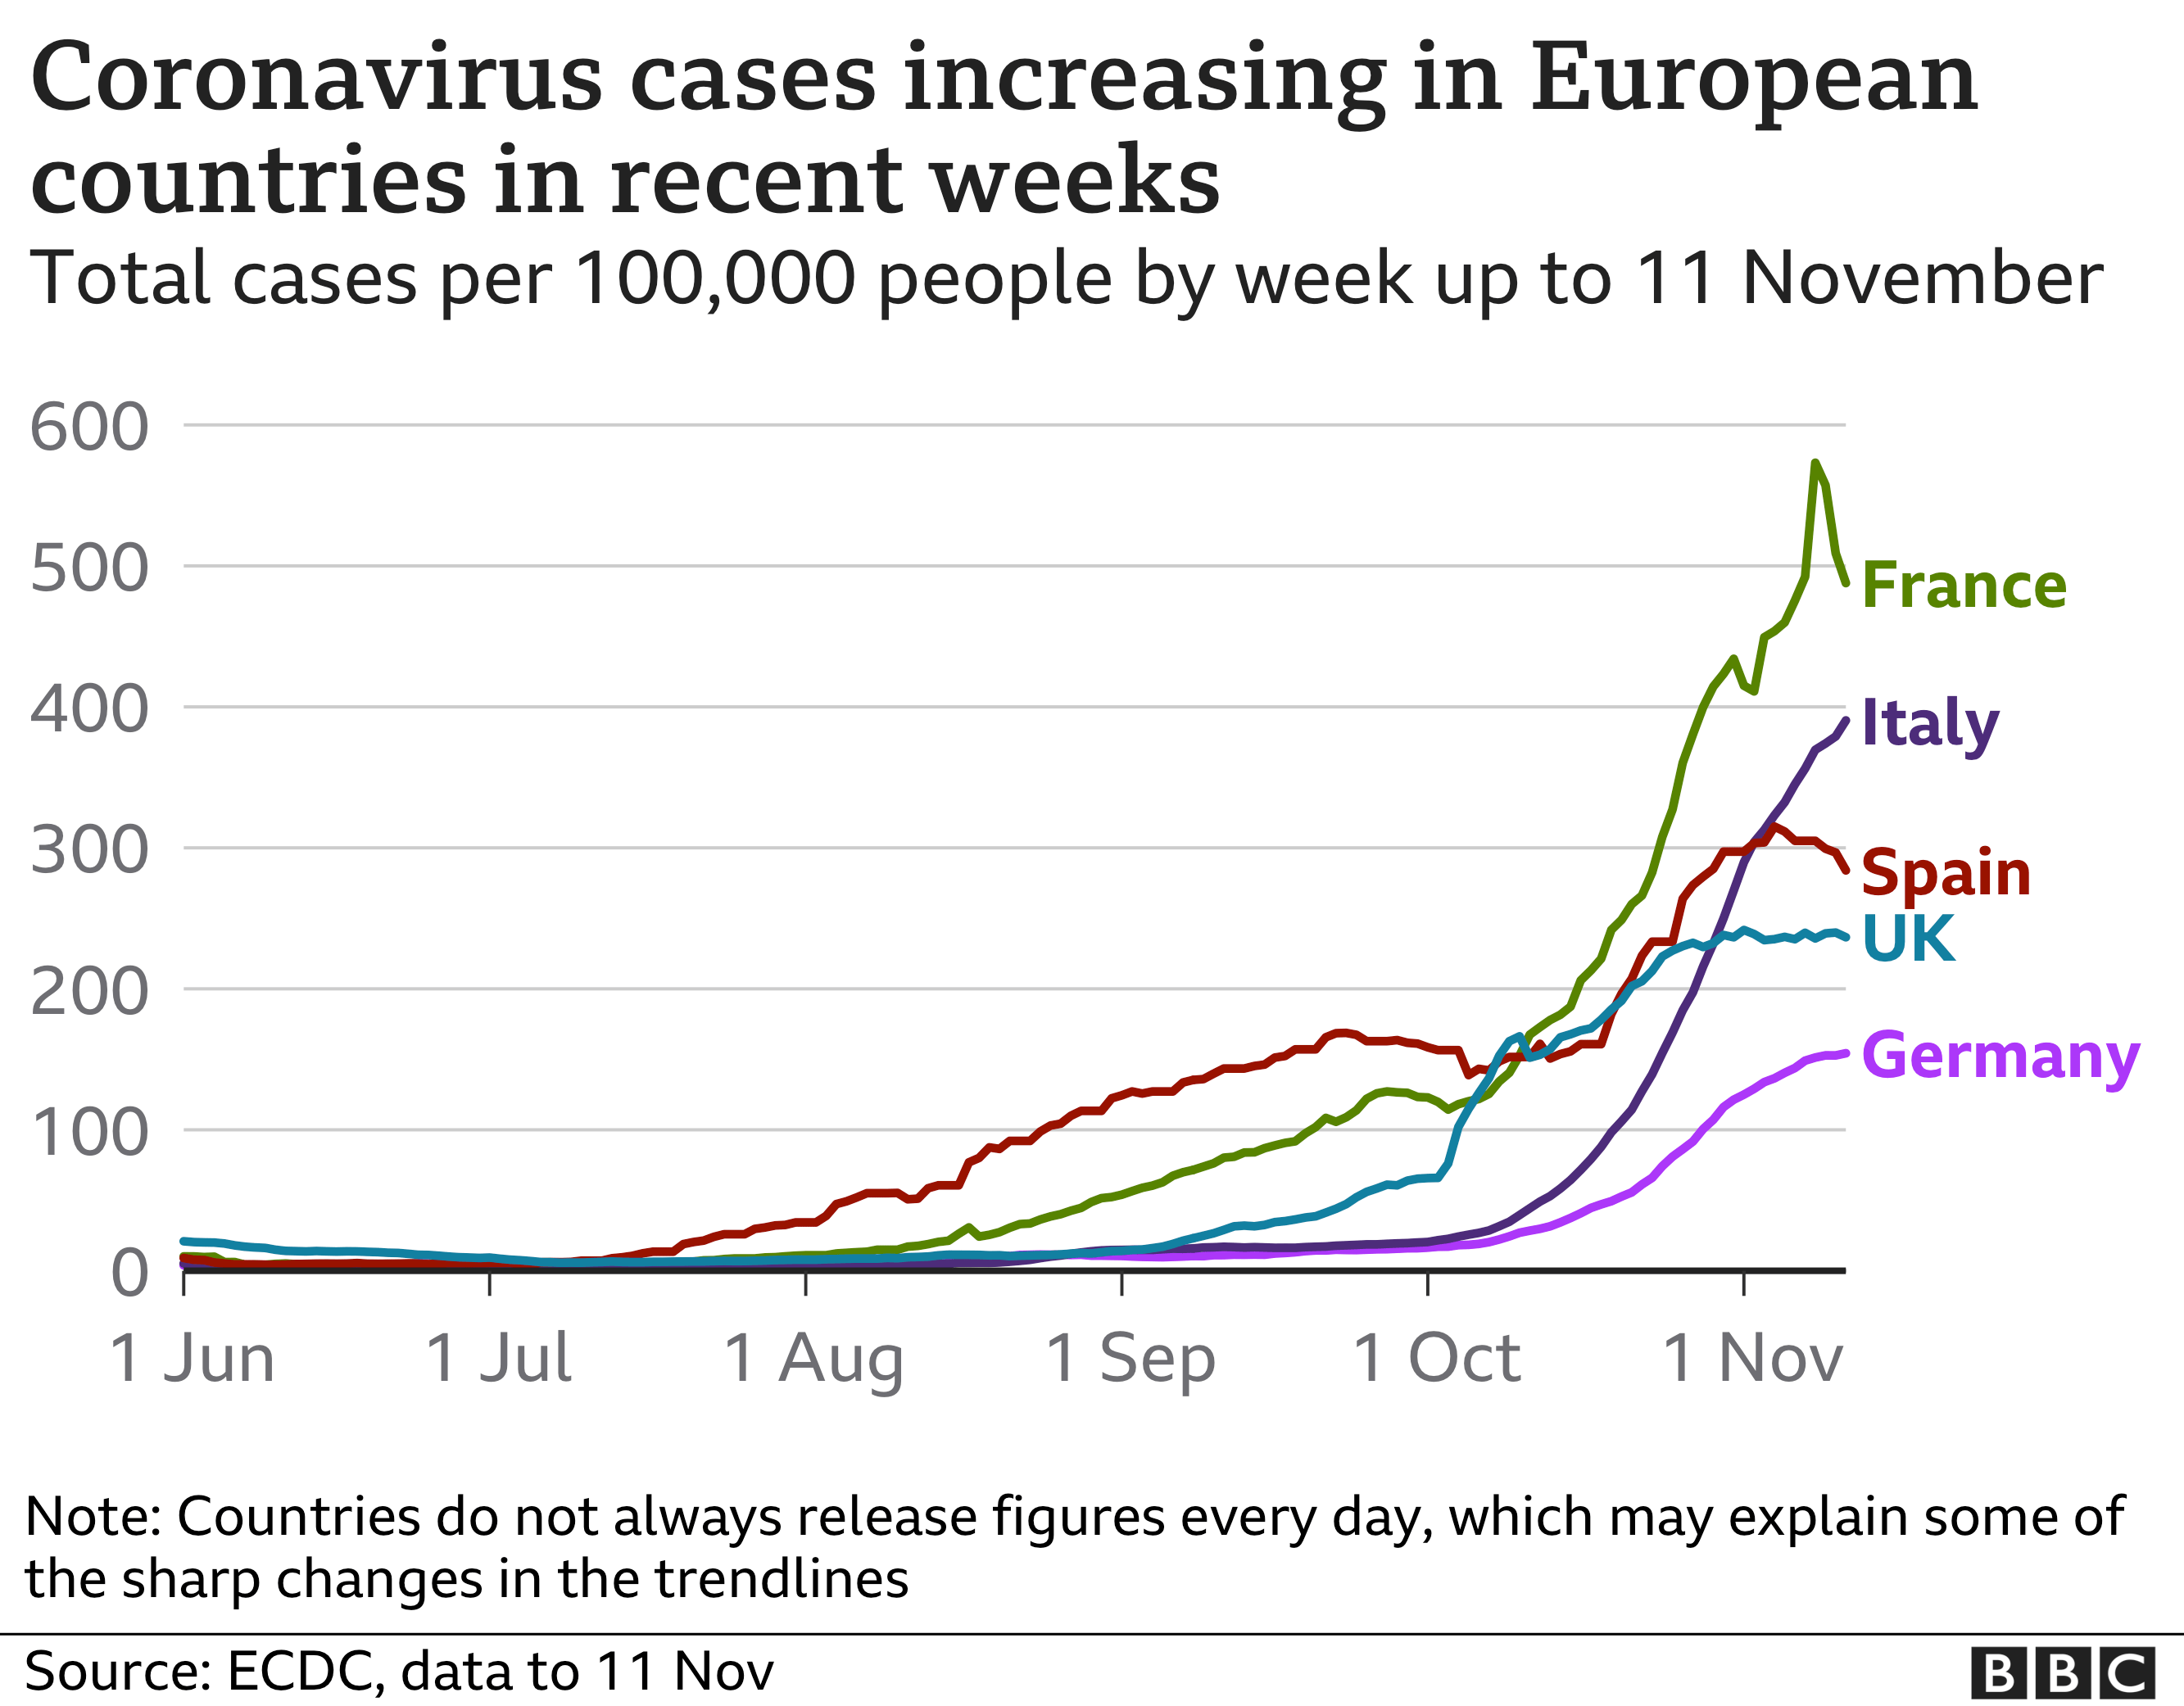 Coronavirus: Too early for Christmas travel plans, European countries say thumbnail